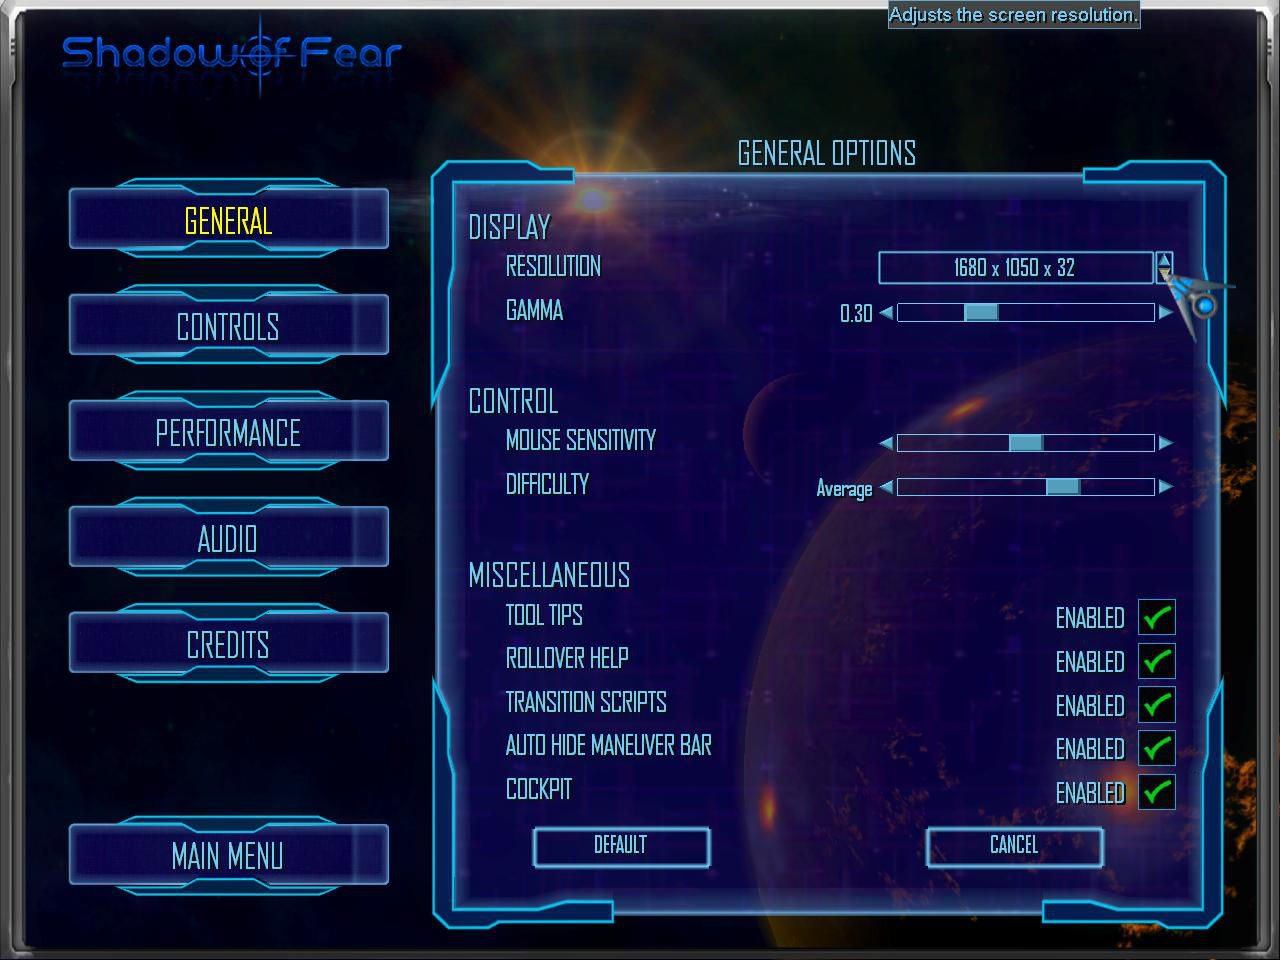 Shadow of Fear settings